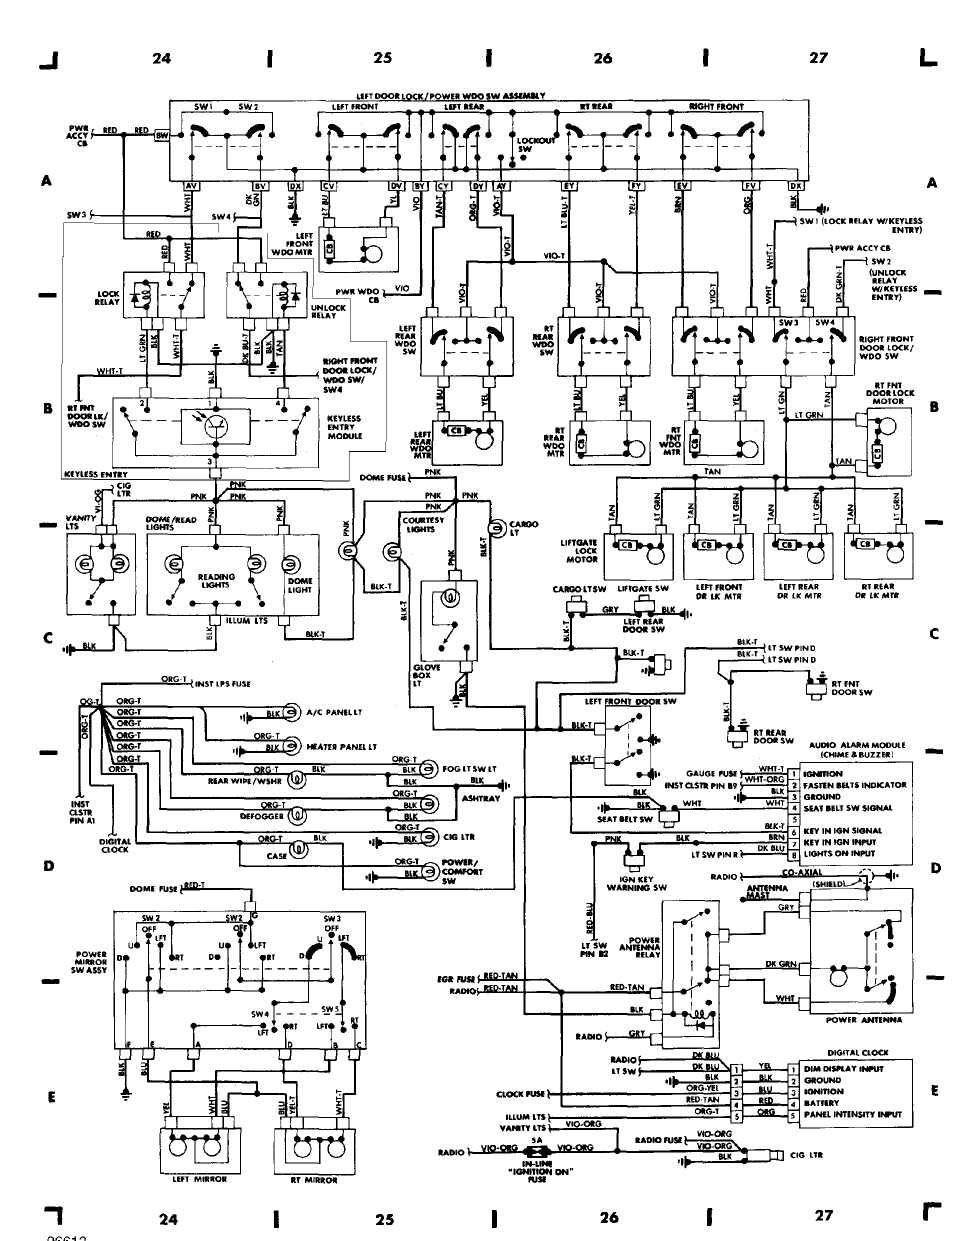 wiring_diagrams_html_61f5e0ad 2001 jeep wrangler wiring diagram 2001 mazda miata wiring diagram 2001 jeep cherokee fuse box diagram at readyjetset.co